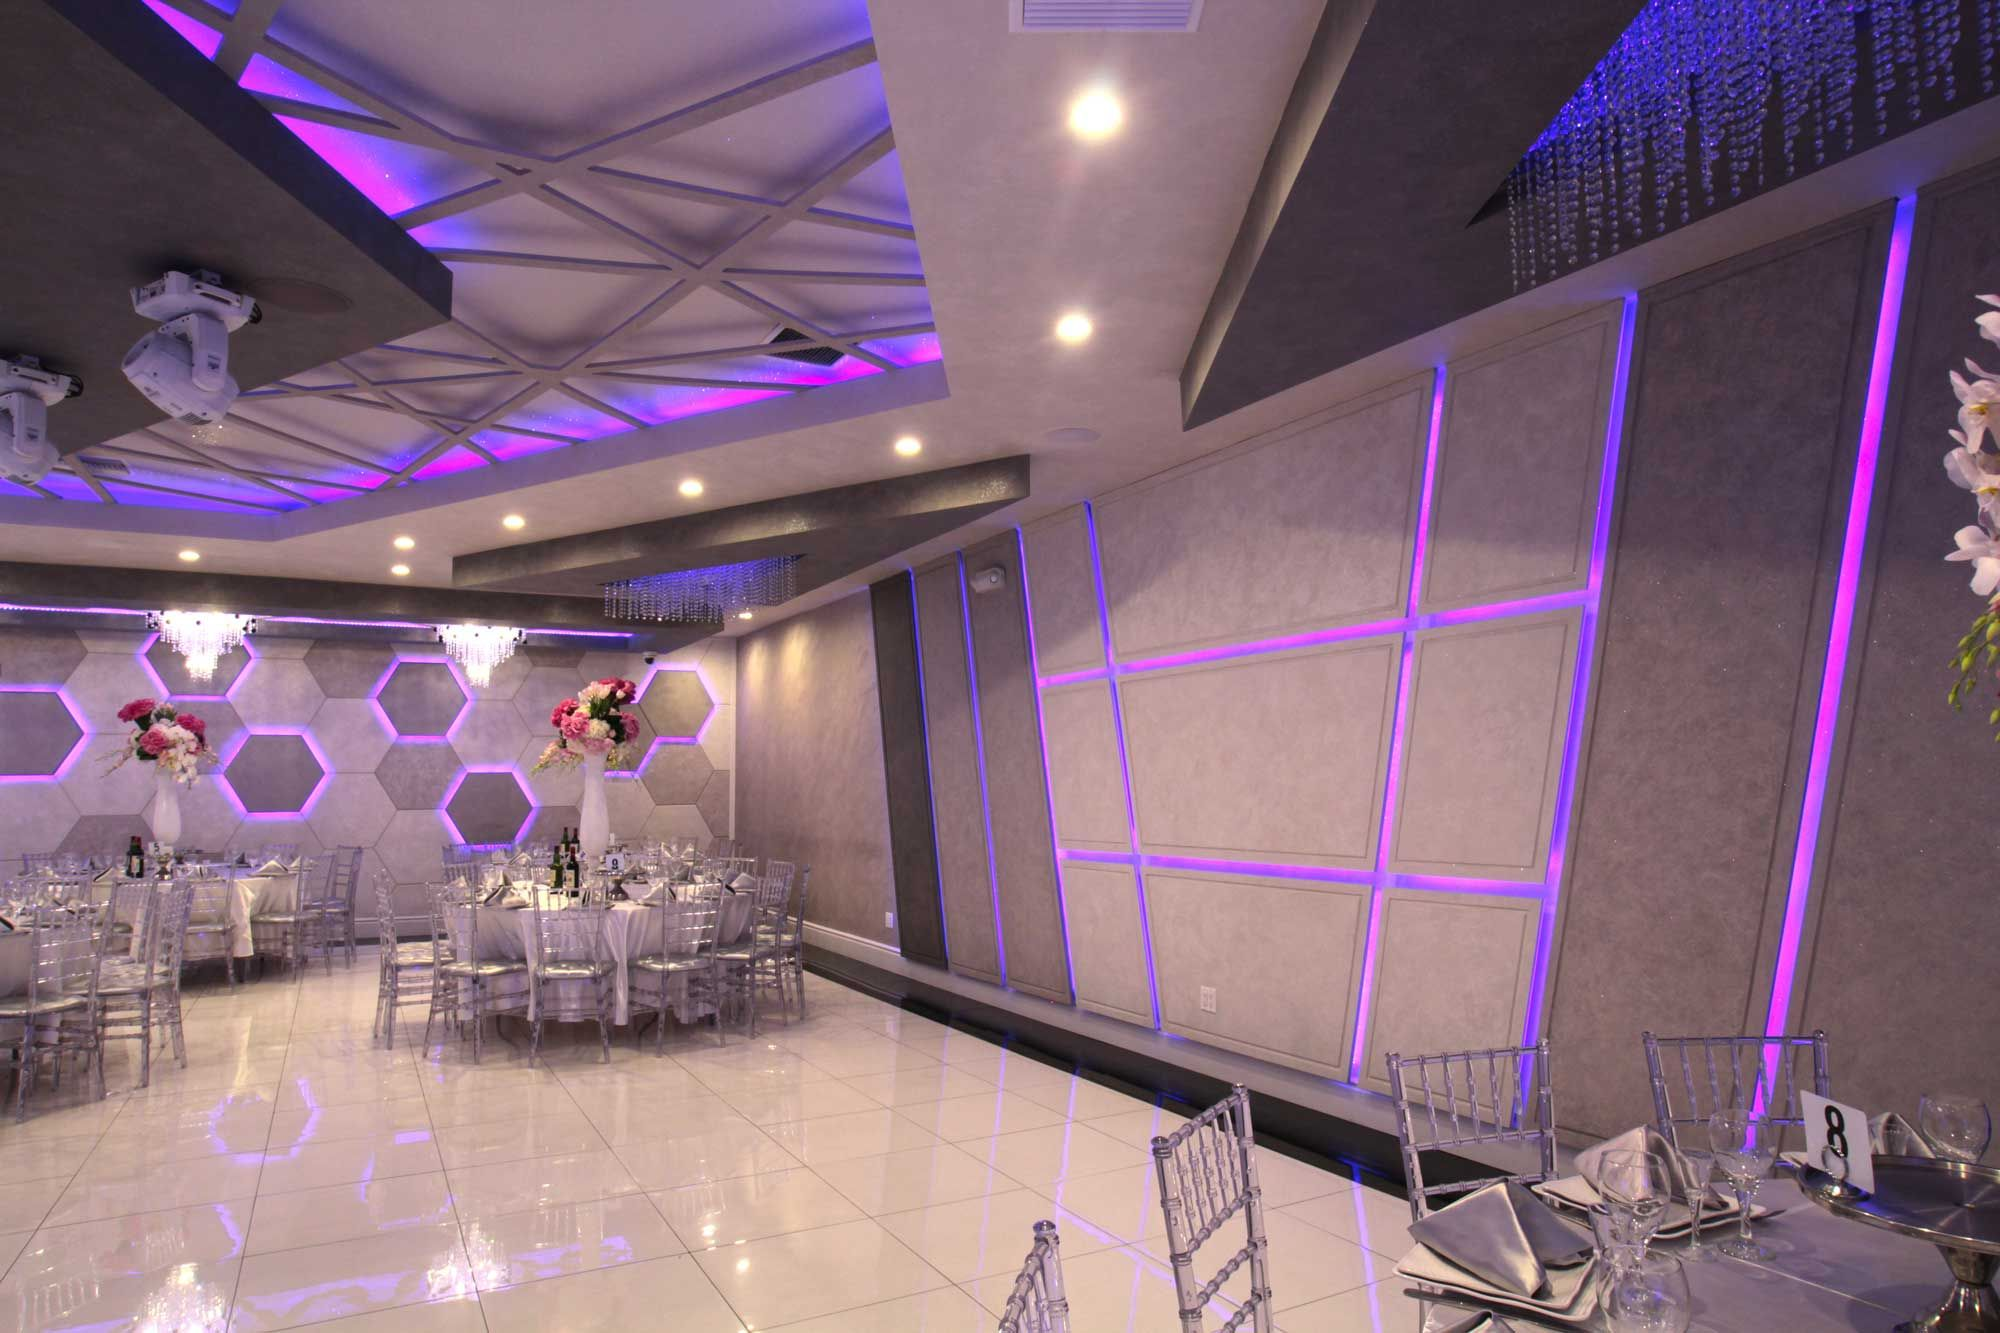 Find This Pin And More On Bliss Banquet Hall Hospitality Design In Los Angeles By Danielydesign